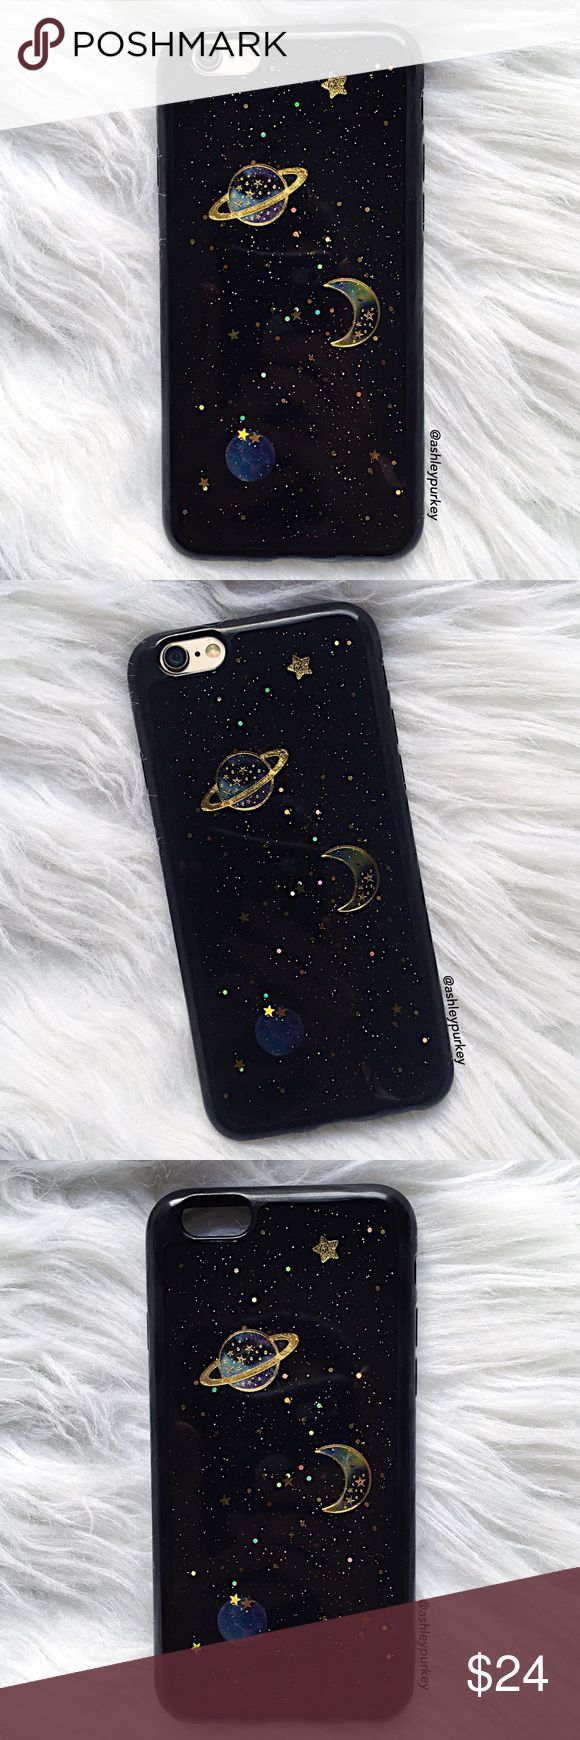 """black sparkly space iPhone 7 - 7 Plus phone case •sizes: iPhone 7 (4.7"""") iPhone 7 Plus (5.5"""") •flexible silicone •phone not included •no trades *please make sure you purchase the correct size case. i am not responsible if you purchase the wrong size item #: 119 B-Long Boutique Accessories Phone Cases"""